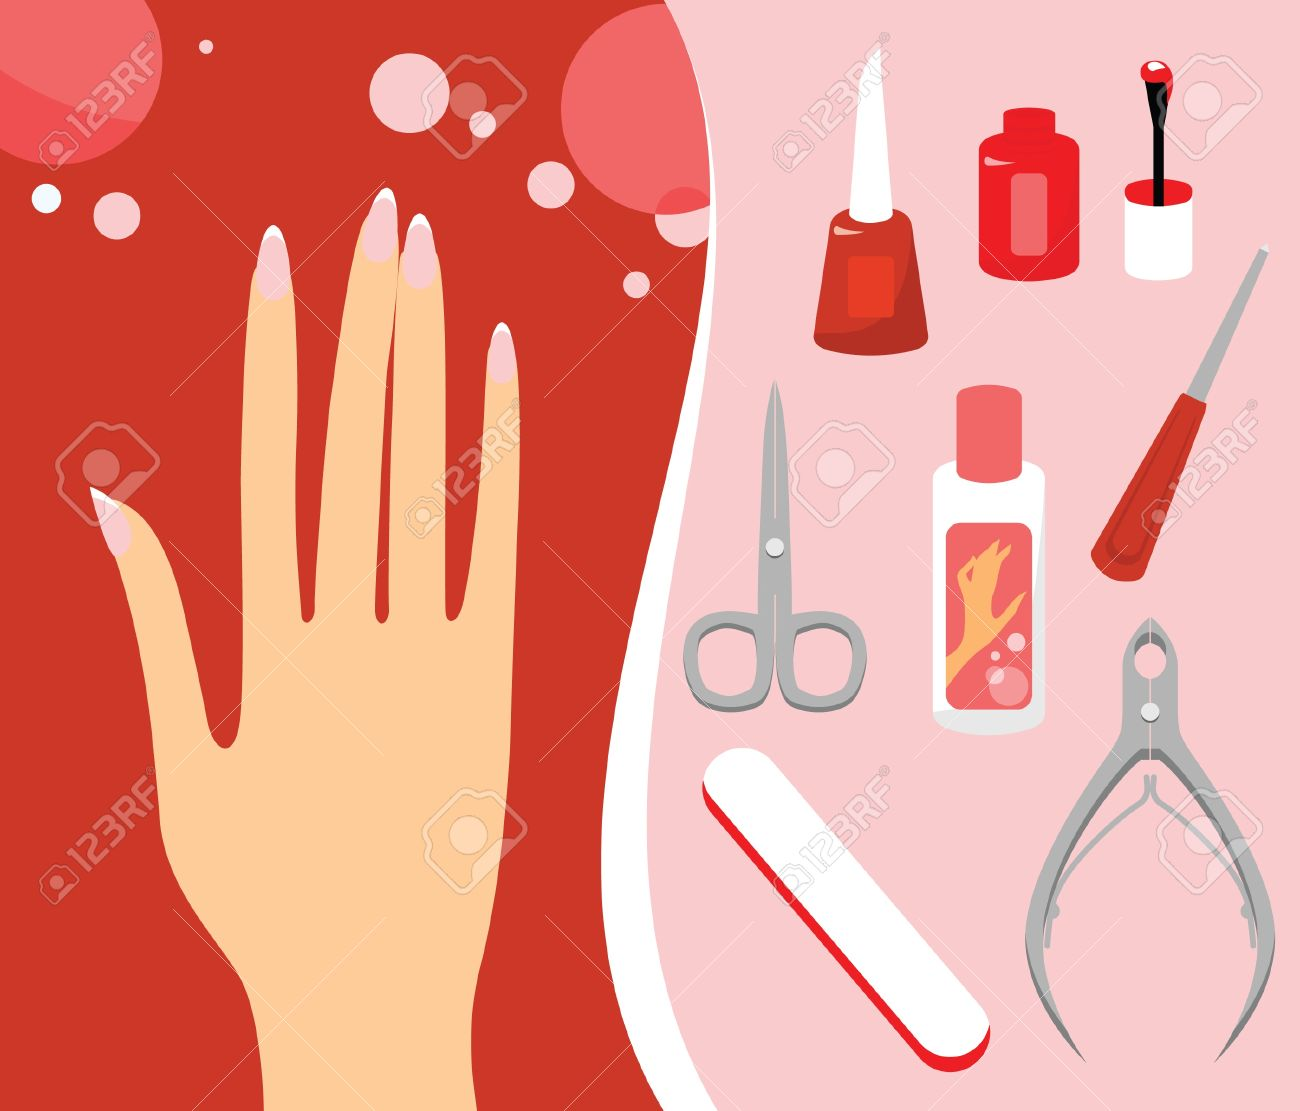 clipart for nails - photo #49